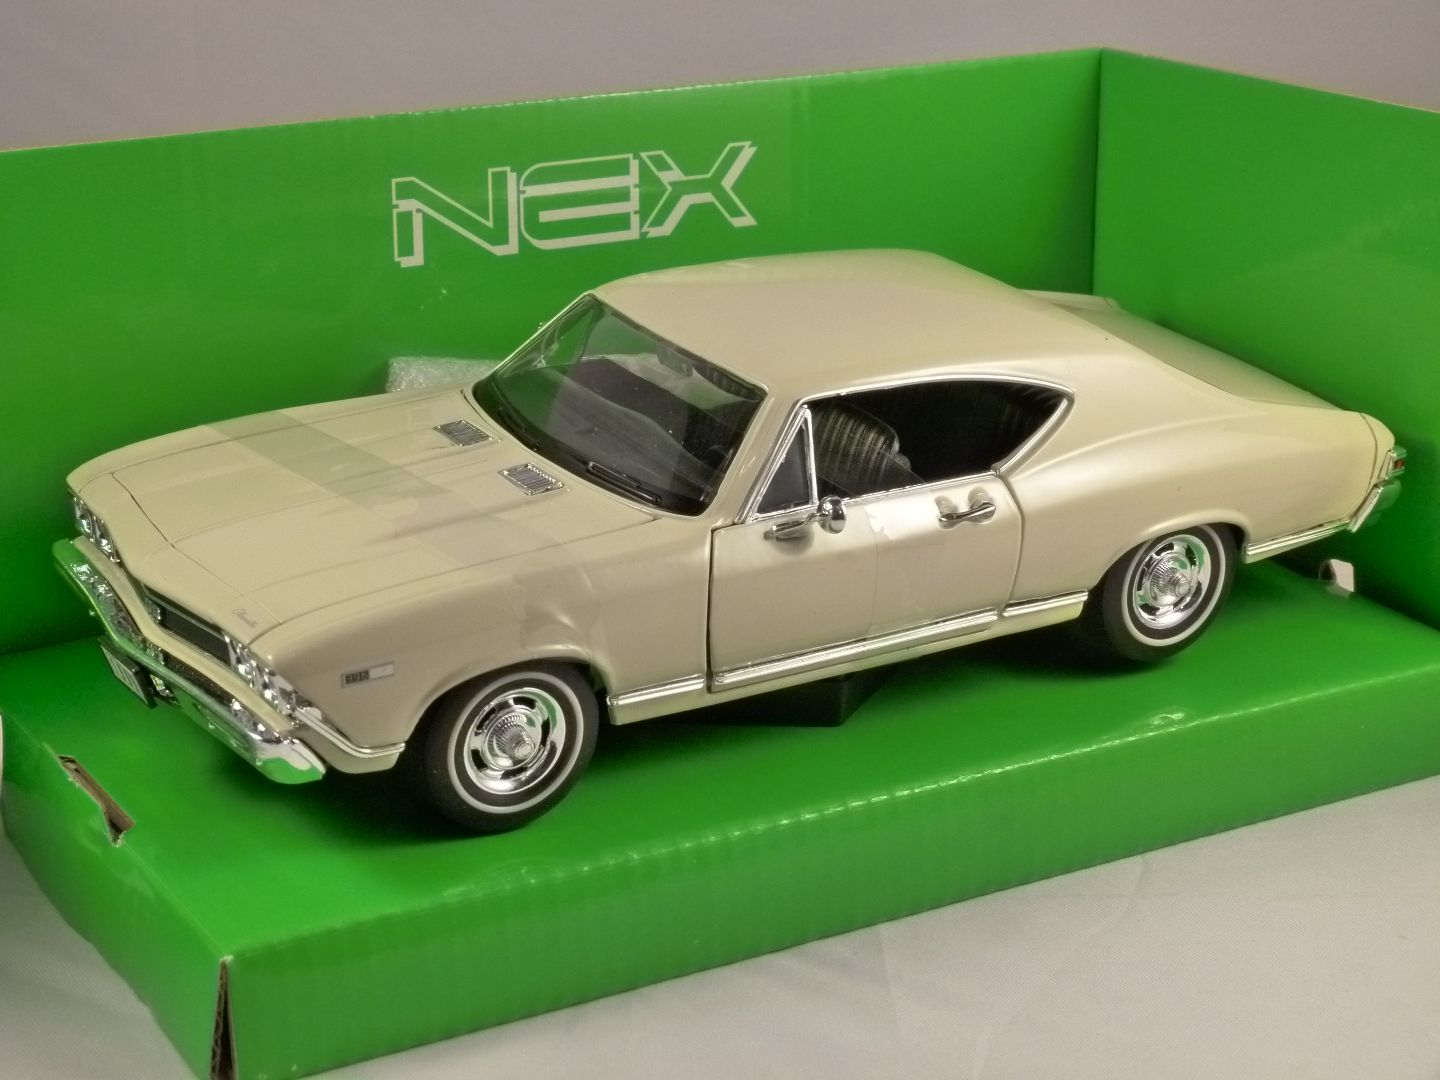 All Chevy 1968 chevrolet chevelle : 1968 CHEVROLET CHEVELLE SS 396 in Beige 1/24 scale model by WELLY